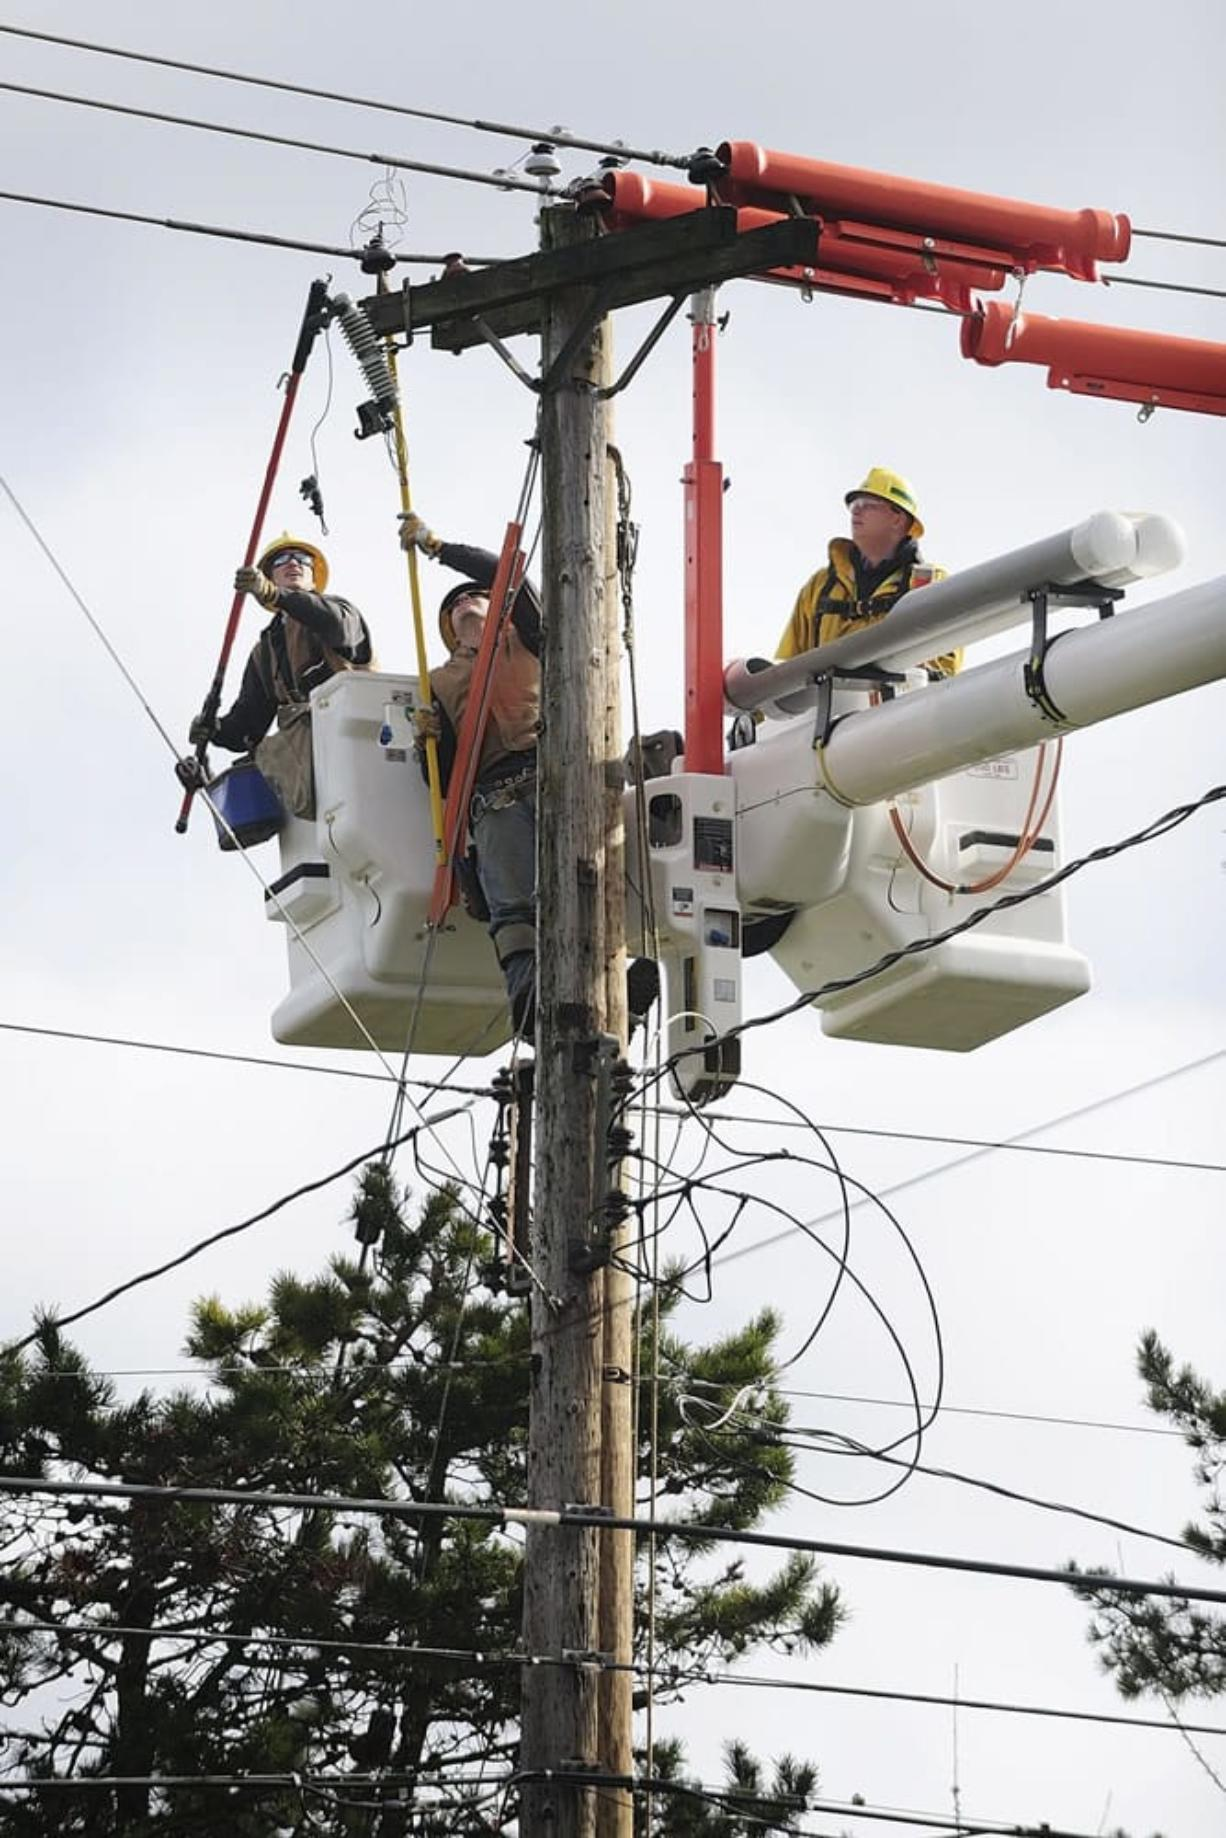 Clark Public Utilities linemen Kenny Cudd, from left, Tommy Jensen and Zach Muonio move conductors as they prepare to replace a power pole in use since 1956. The three lineman are part of a five-person crew, which is required by state law.